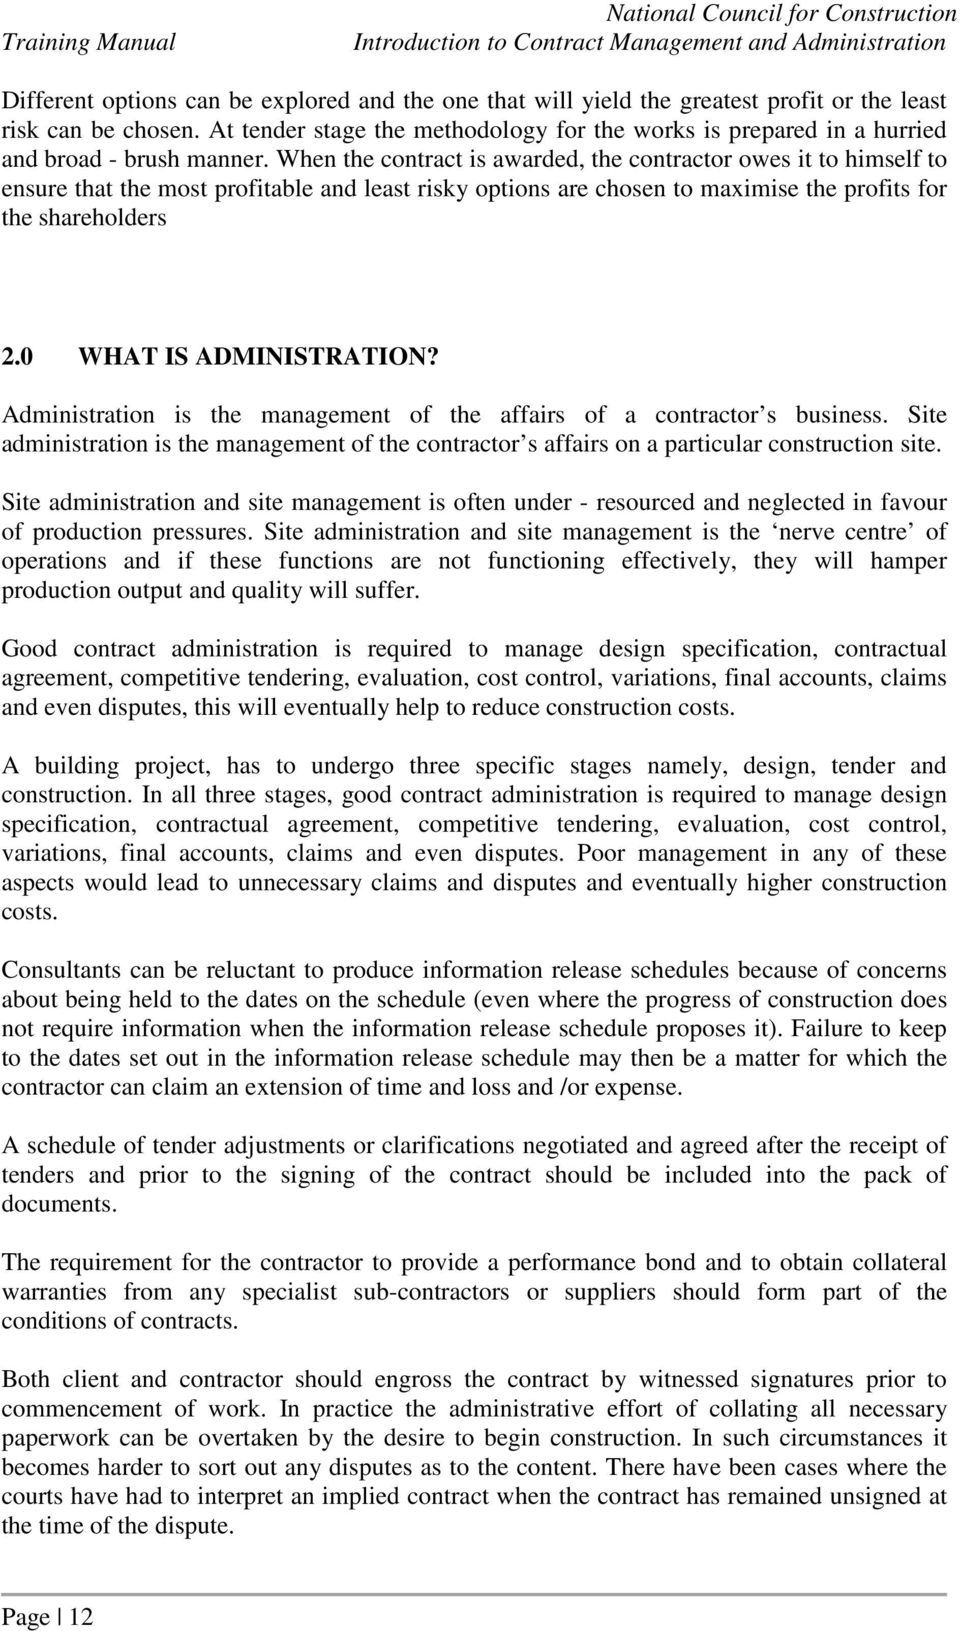 Module 003 Construction Contract Management And Administration Pdf